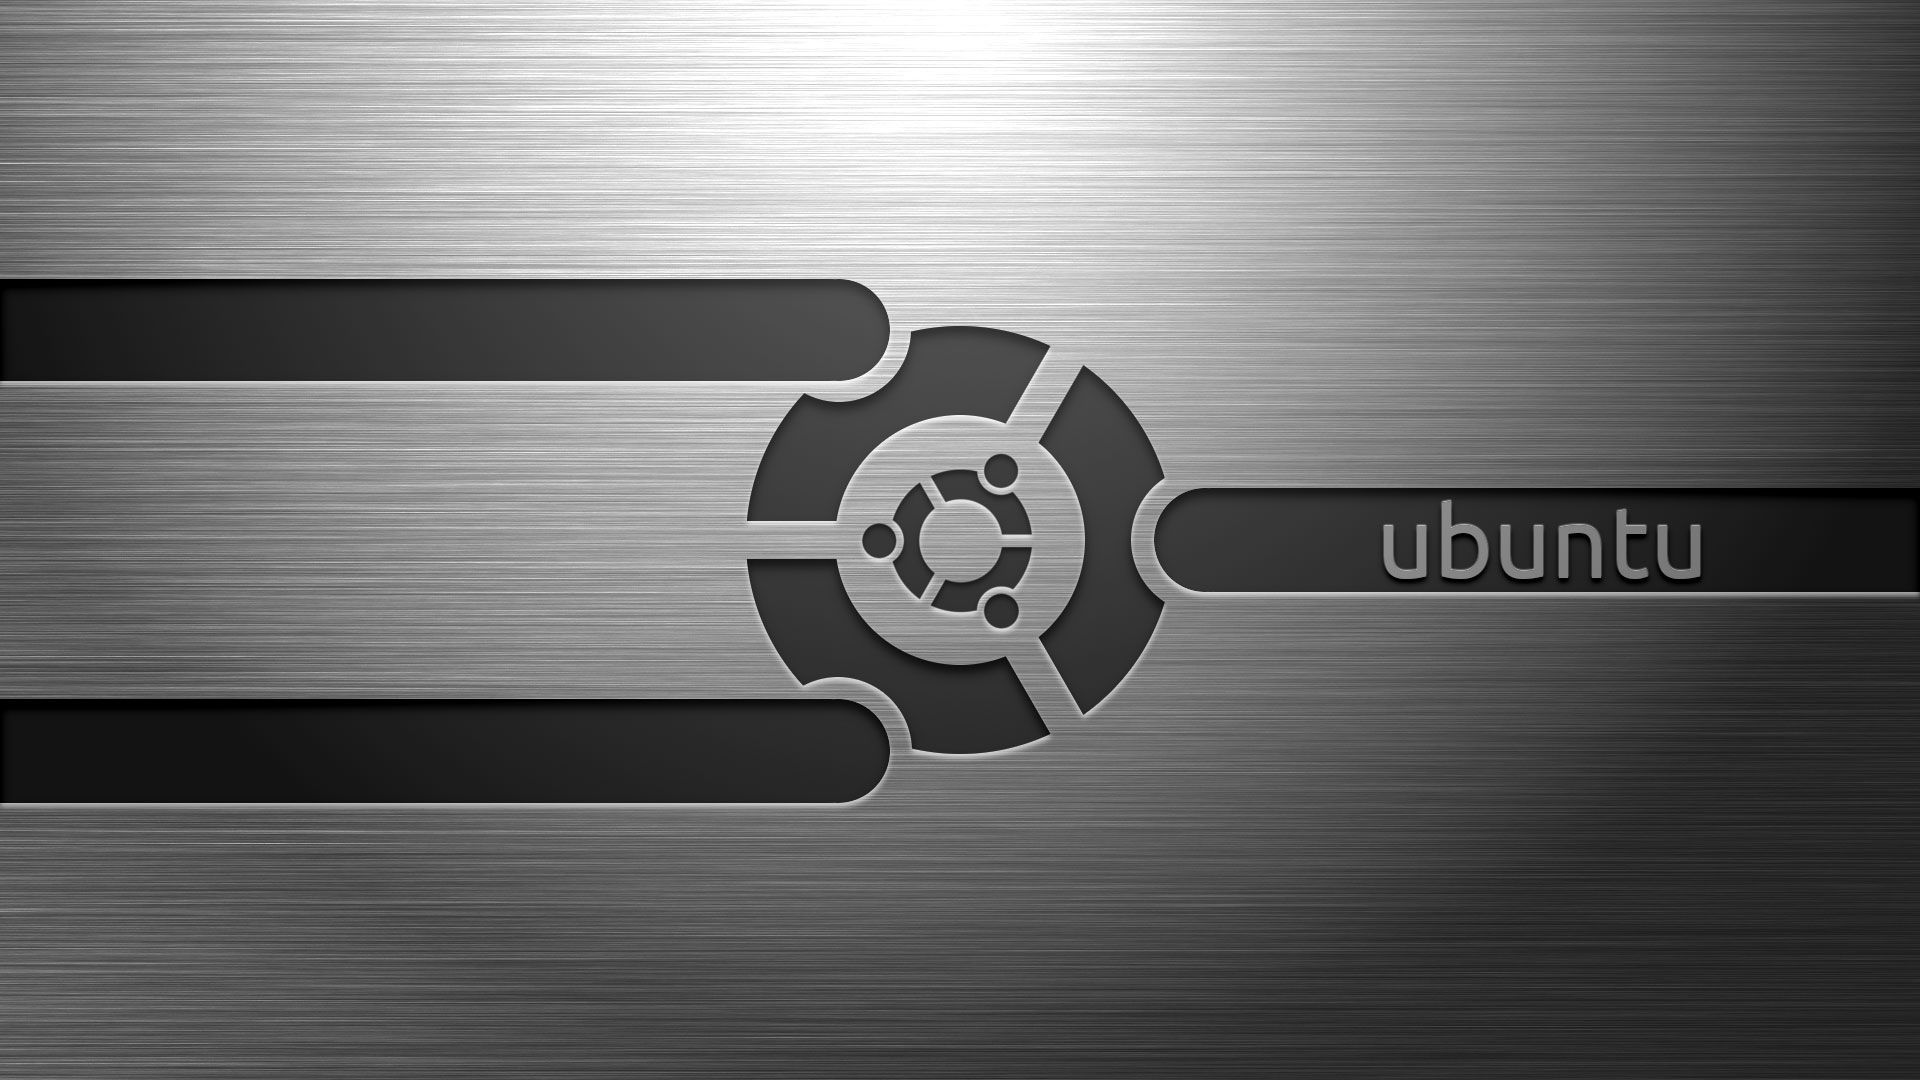 Best Wallpapers For Ubuntu